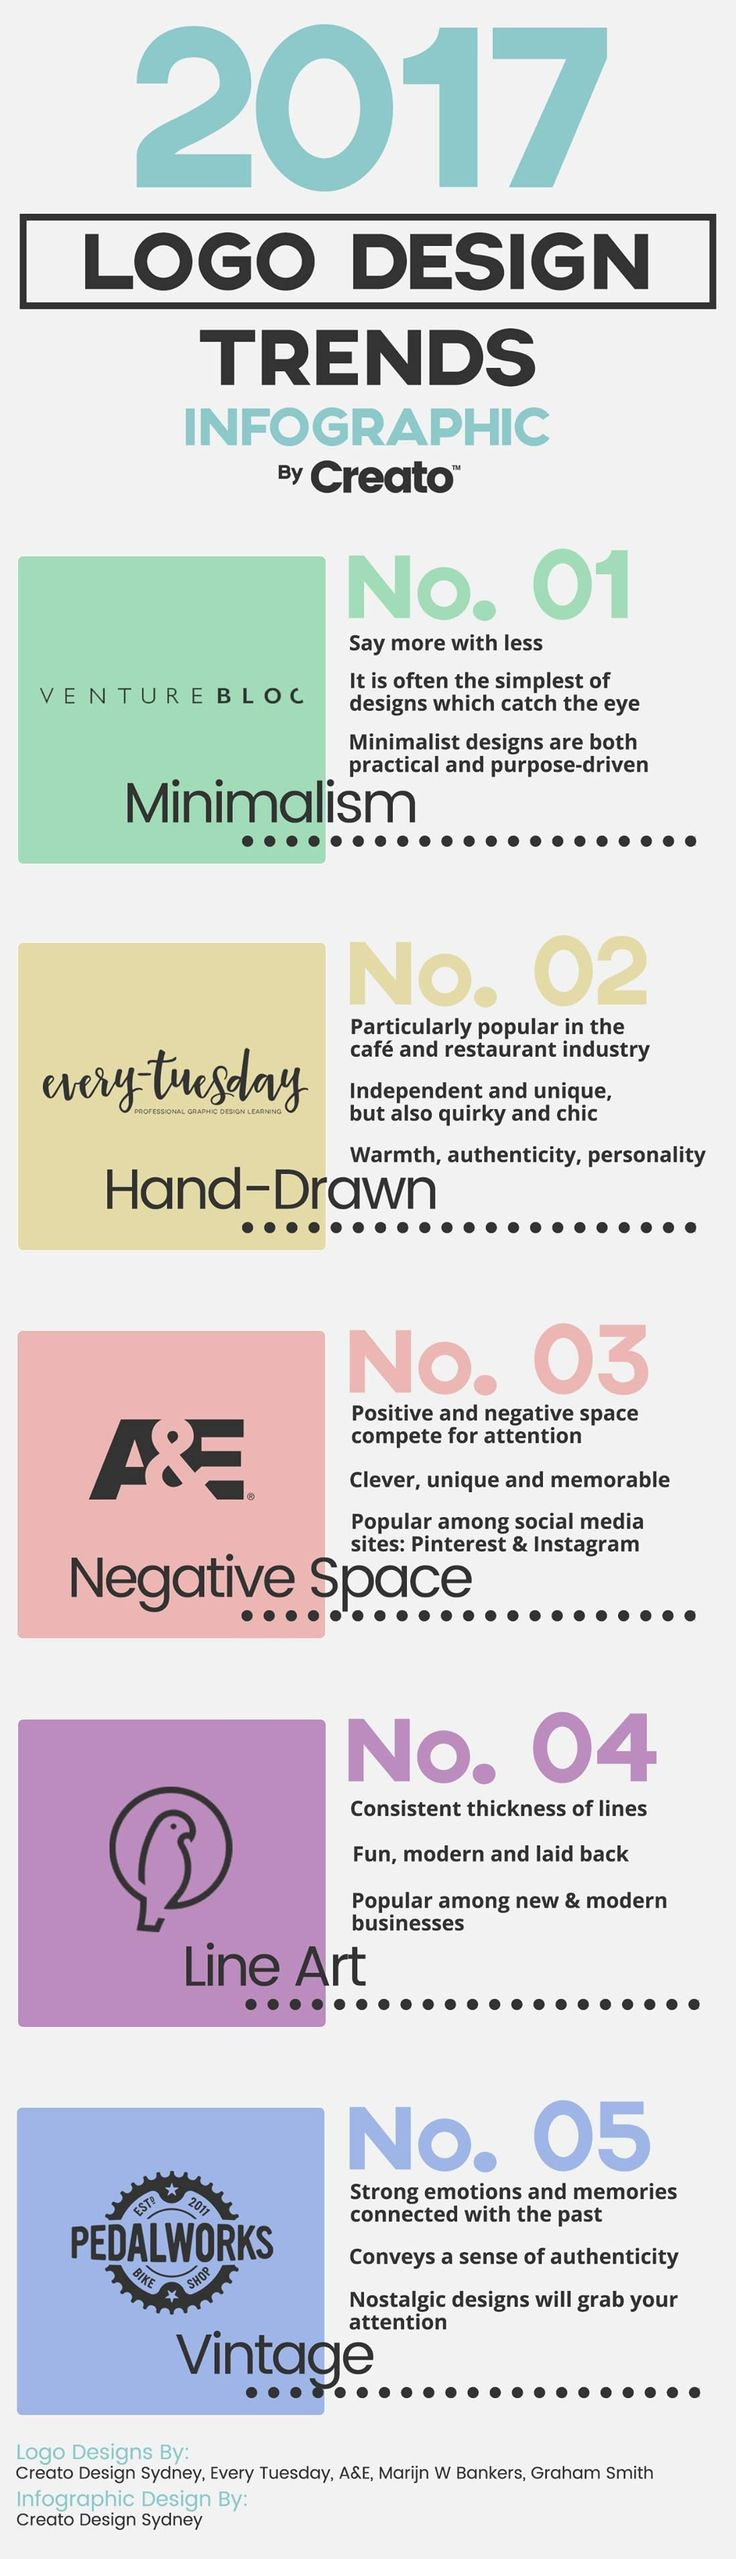 Logo Design Trends To Look Out For In 2017